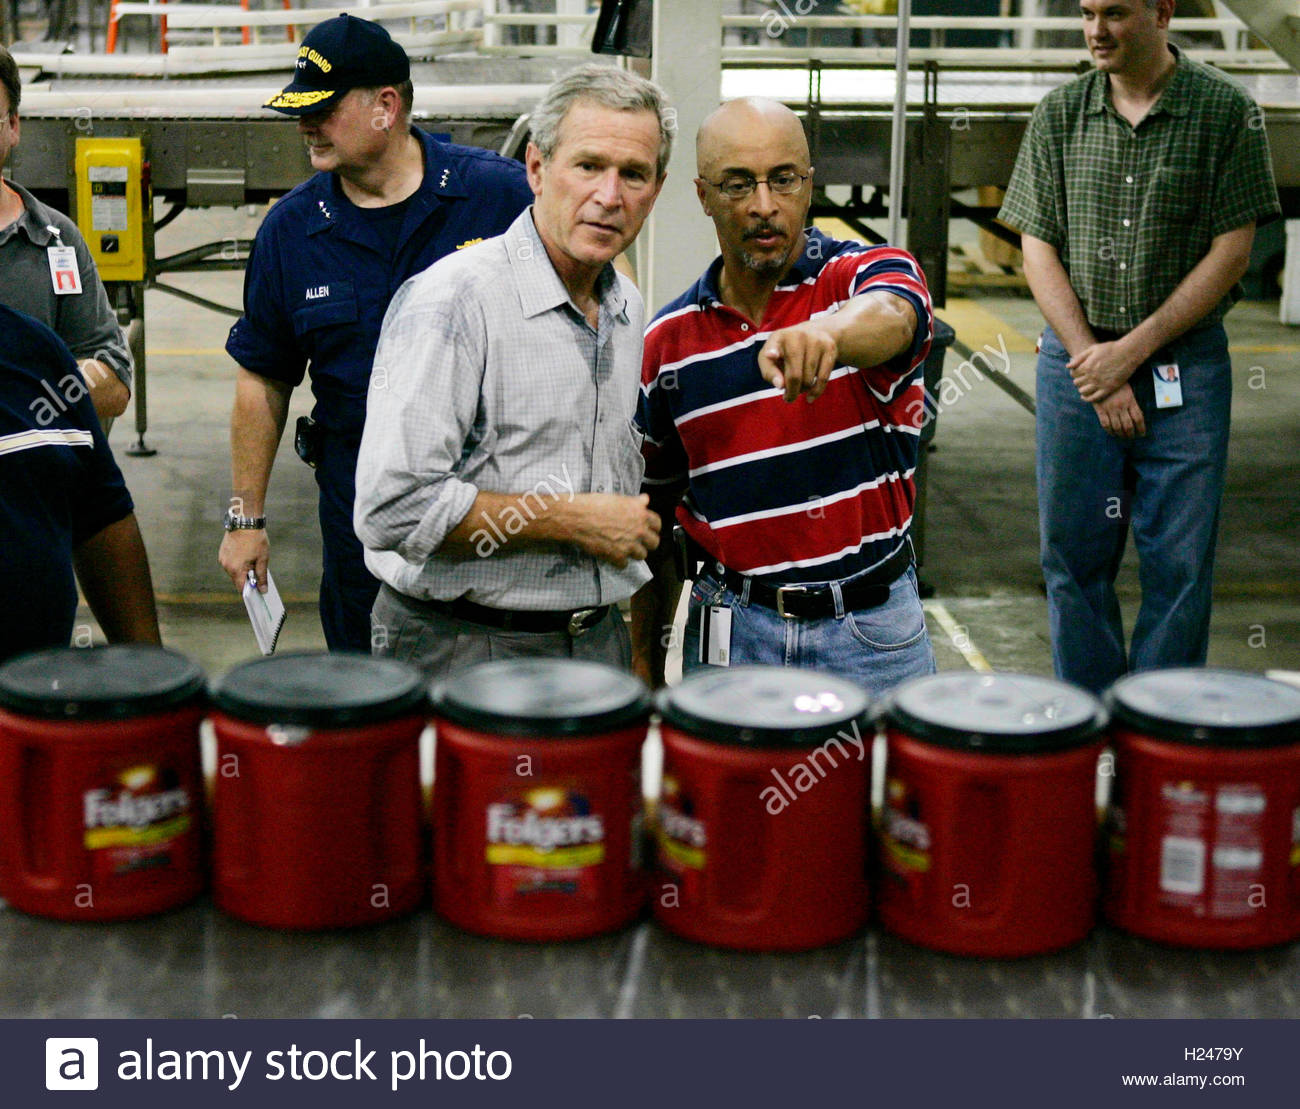 u s president george w bush is shown around at the stock photo u s president george w bush is shown around at the back in operation folgers coffee plant by operations manager bart blackstone r in new orleans